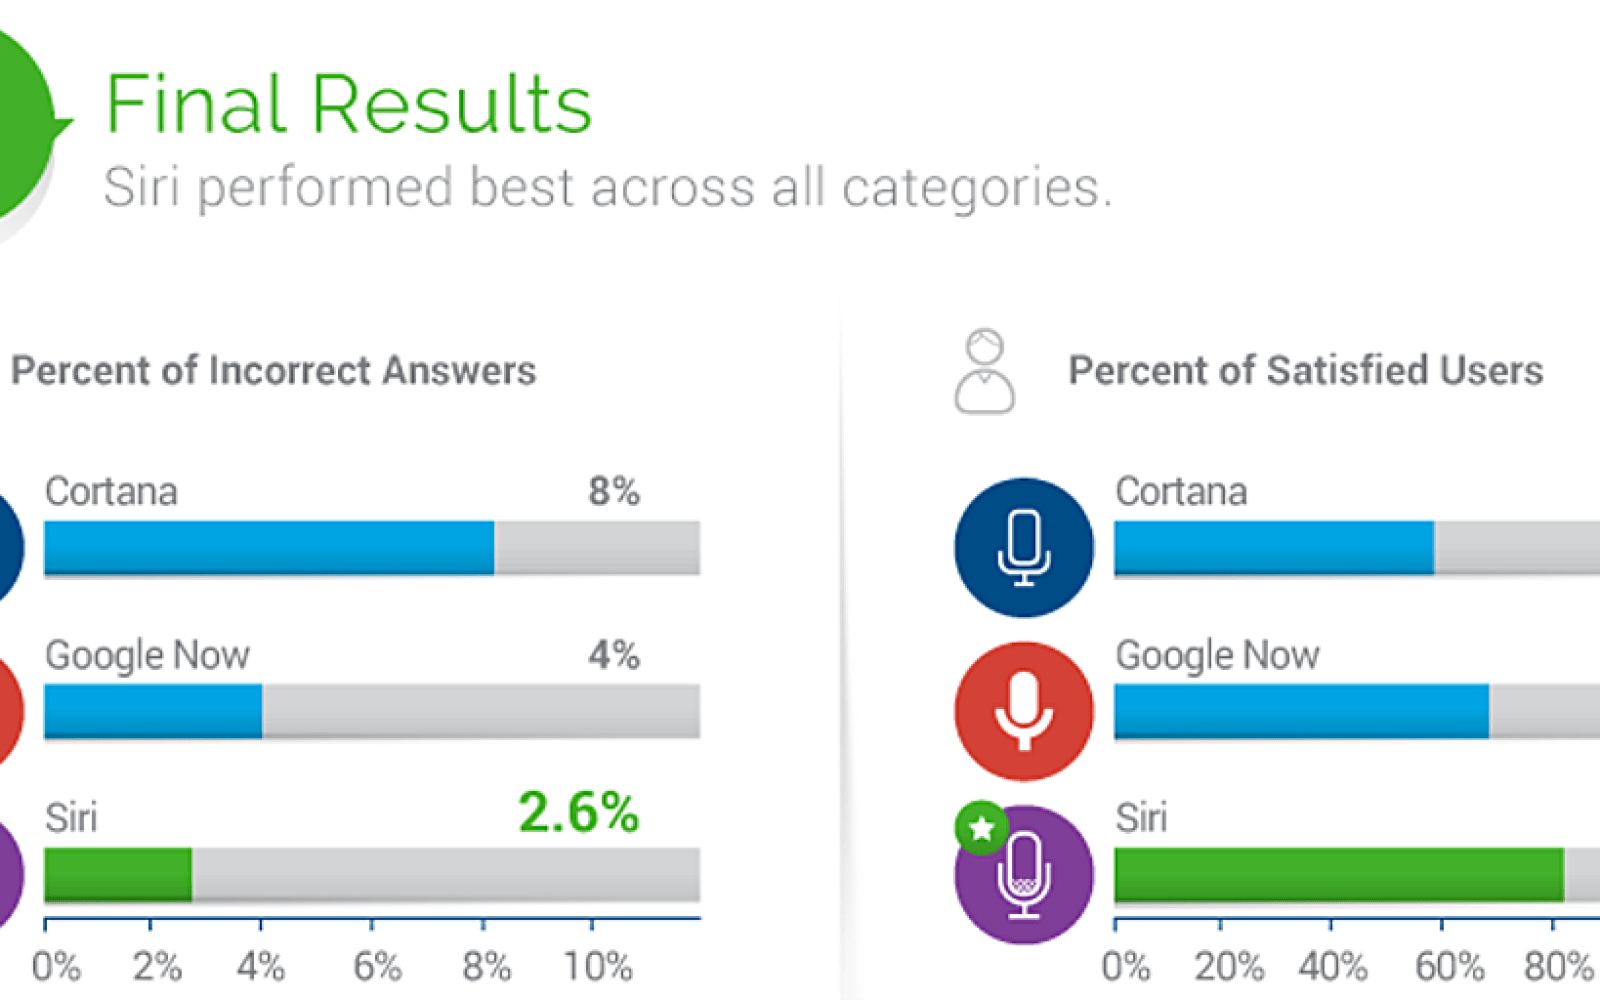 Siri beats out Google Now and Cortana in survey, with 81% user satisfaction rating